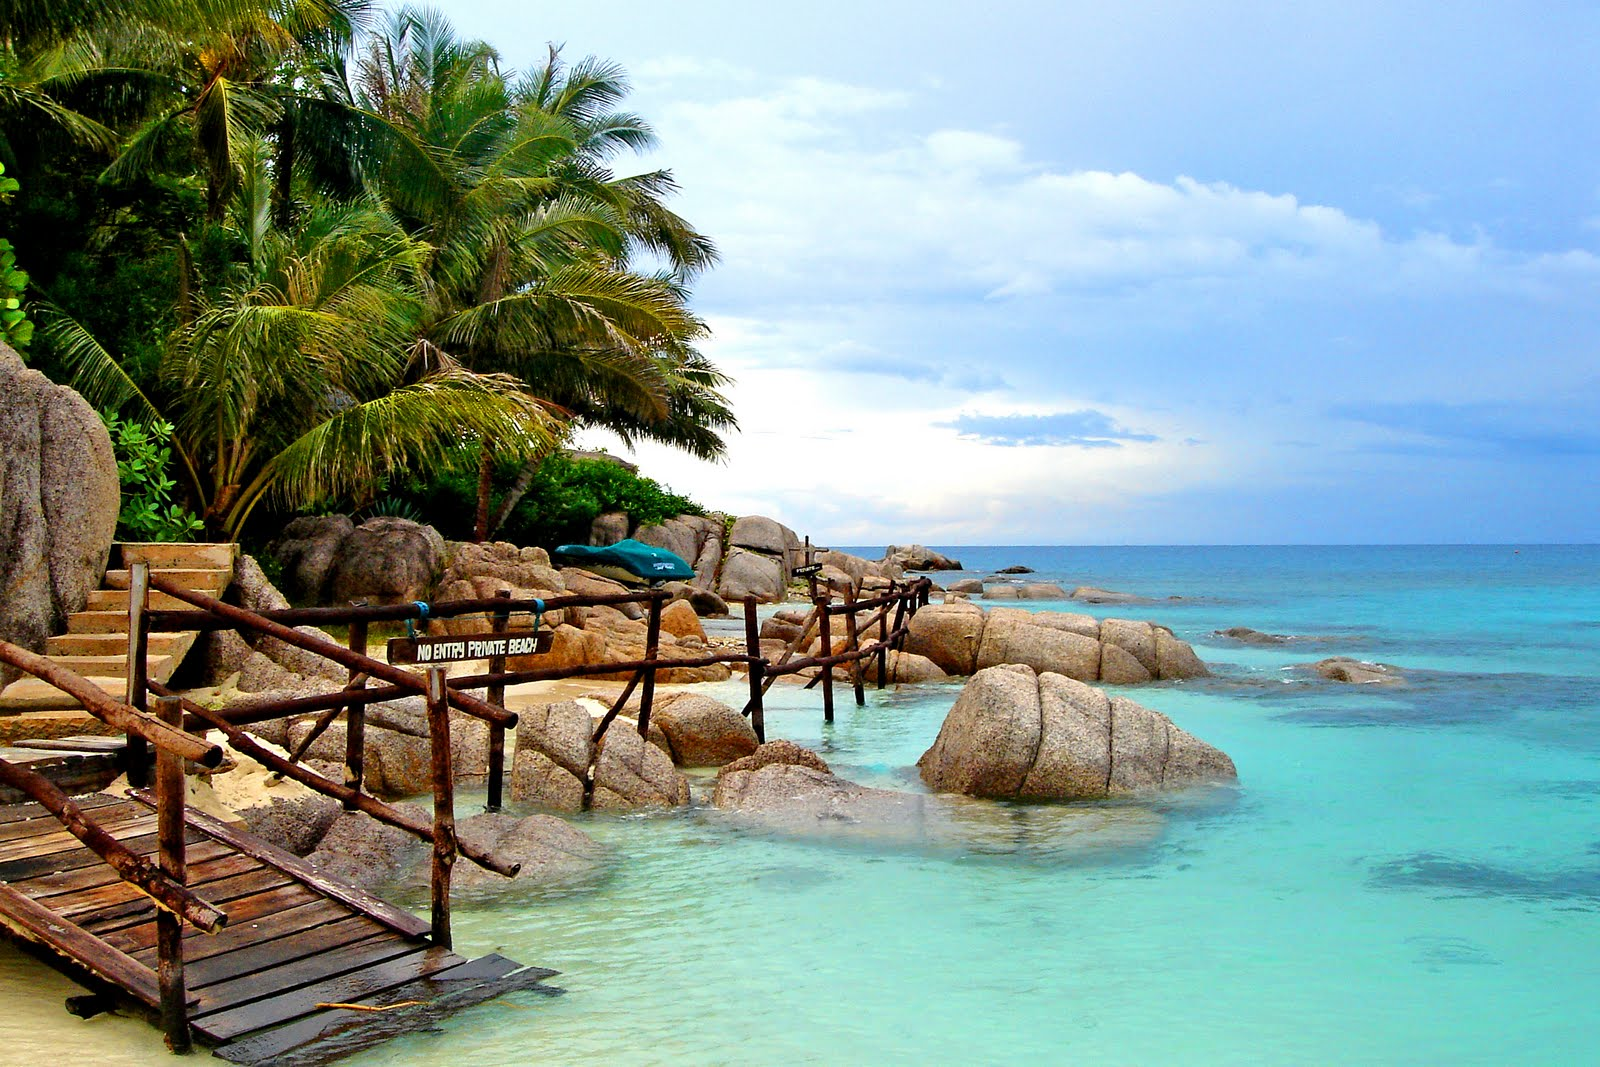 Koh tao thailand travel info and travel guide tourist for Cheap tropical places to vacation